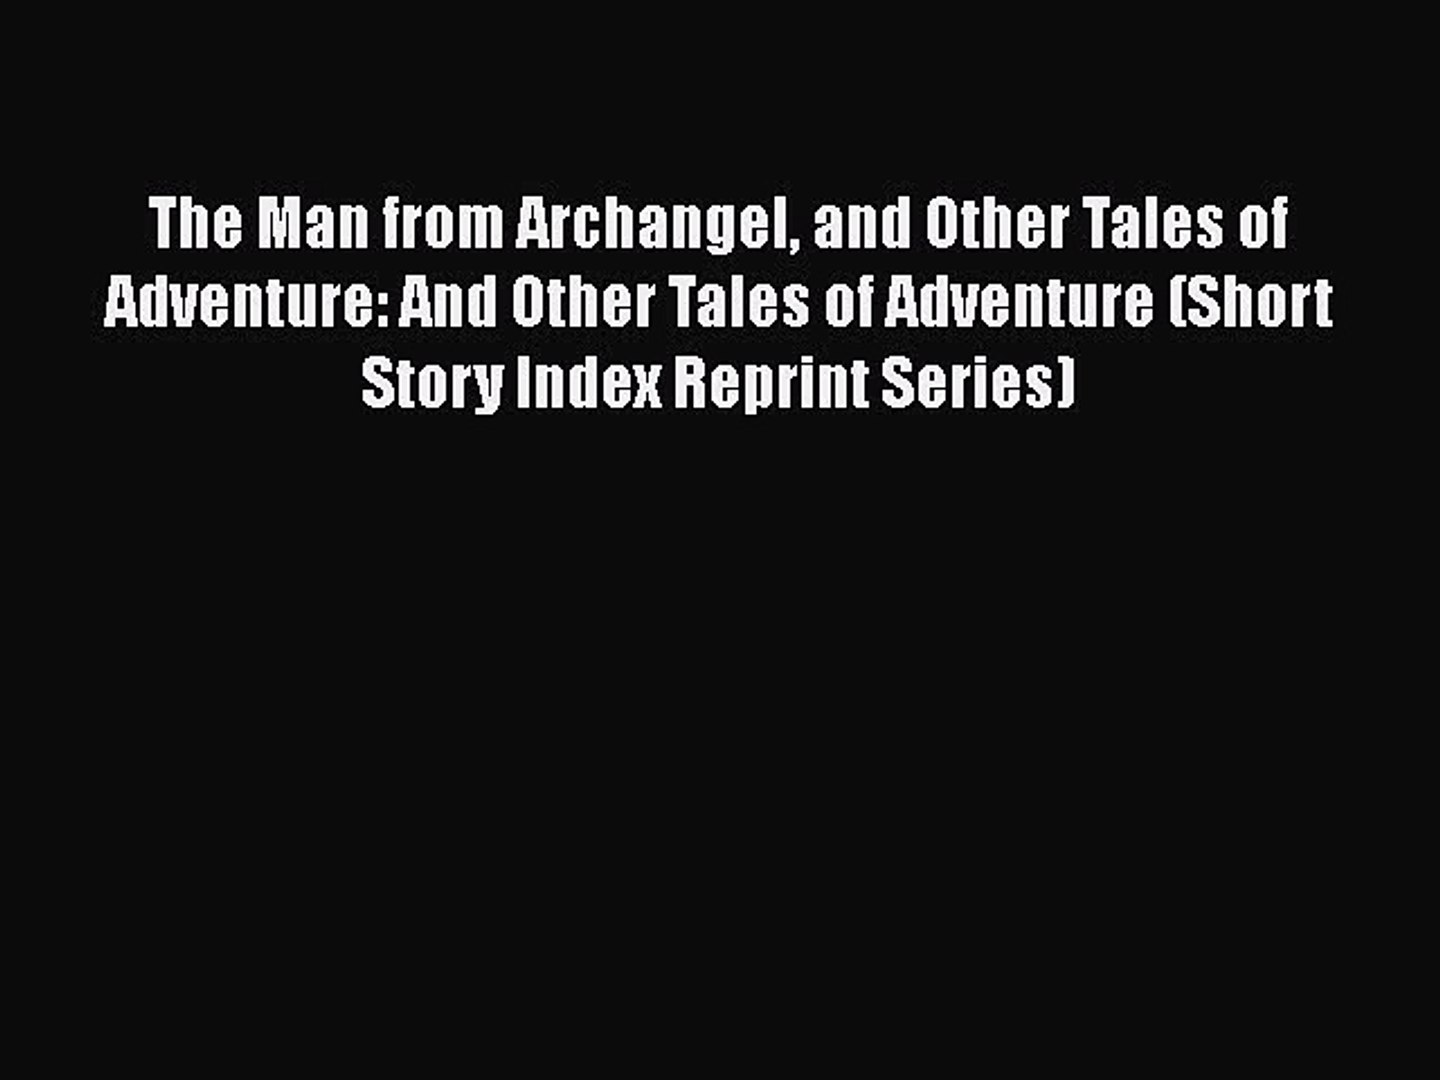 [PDF] The Man from Archangel and Other Tales of Adventure: And Other Tales of Adventure (Short